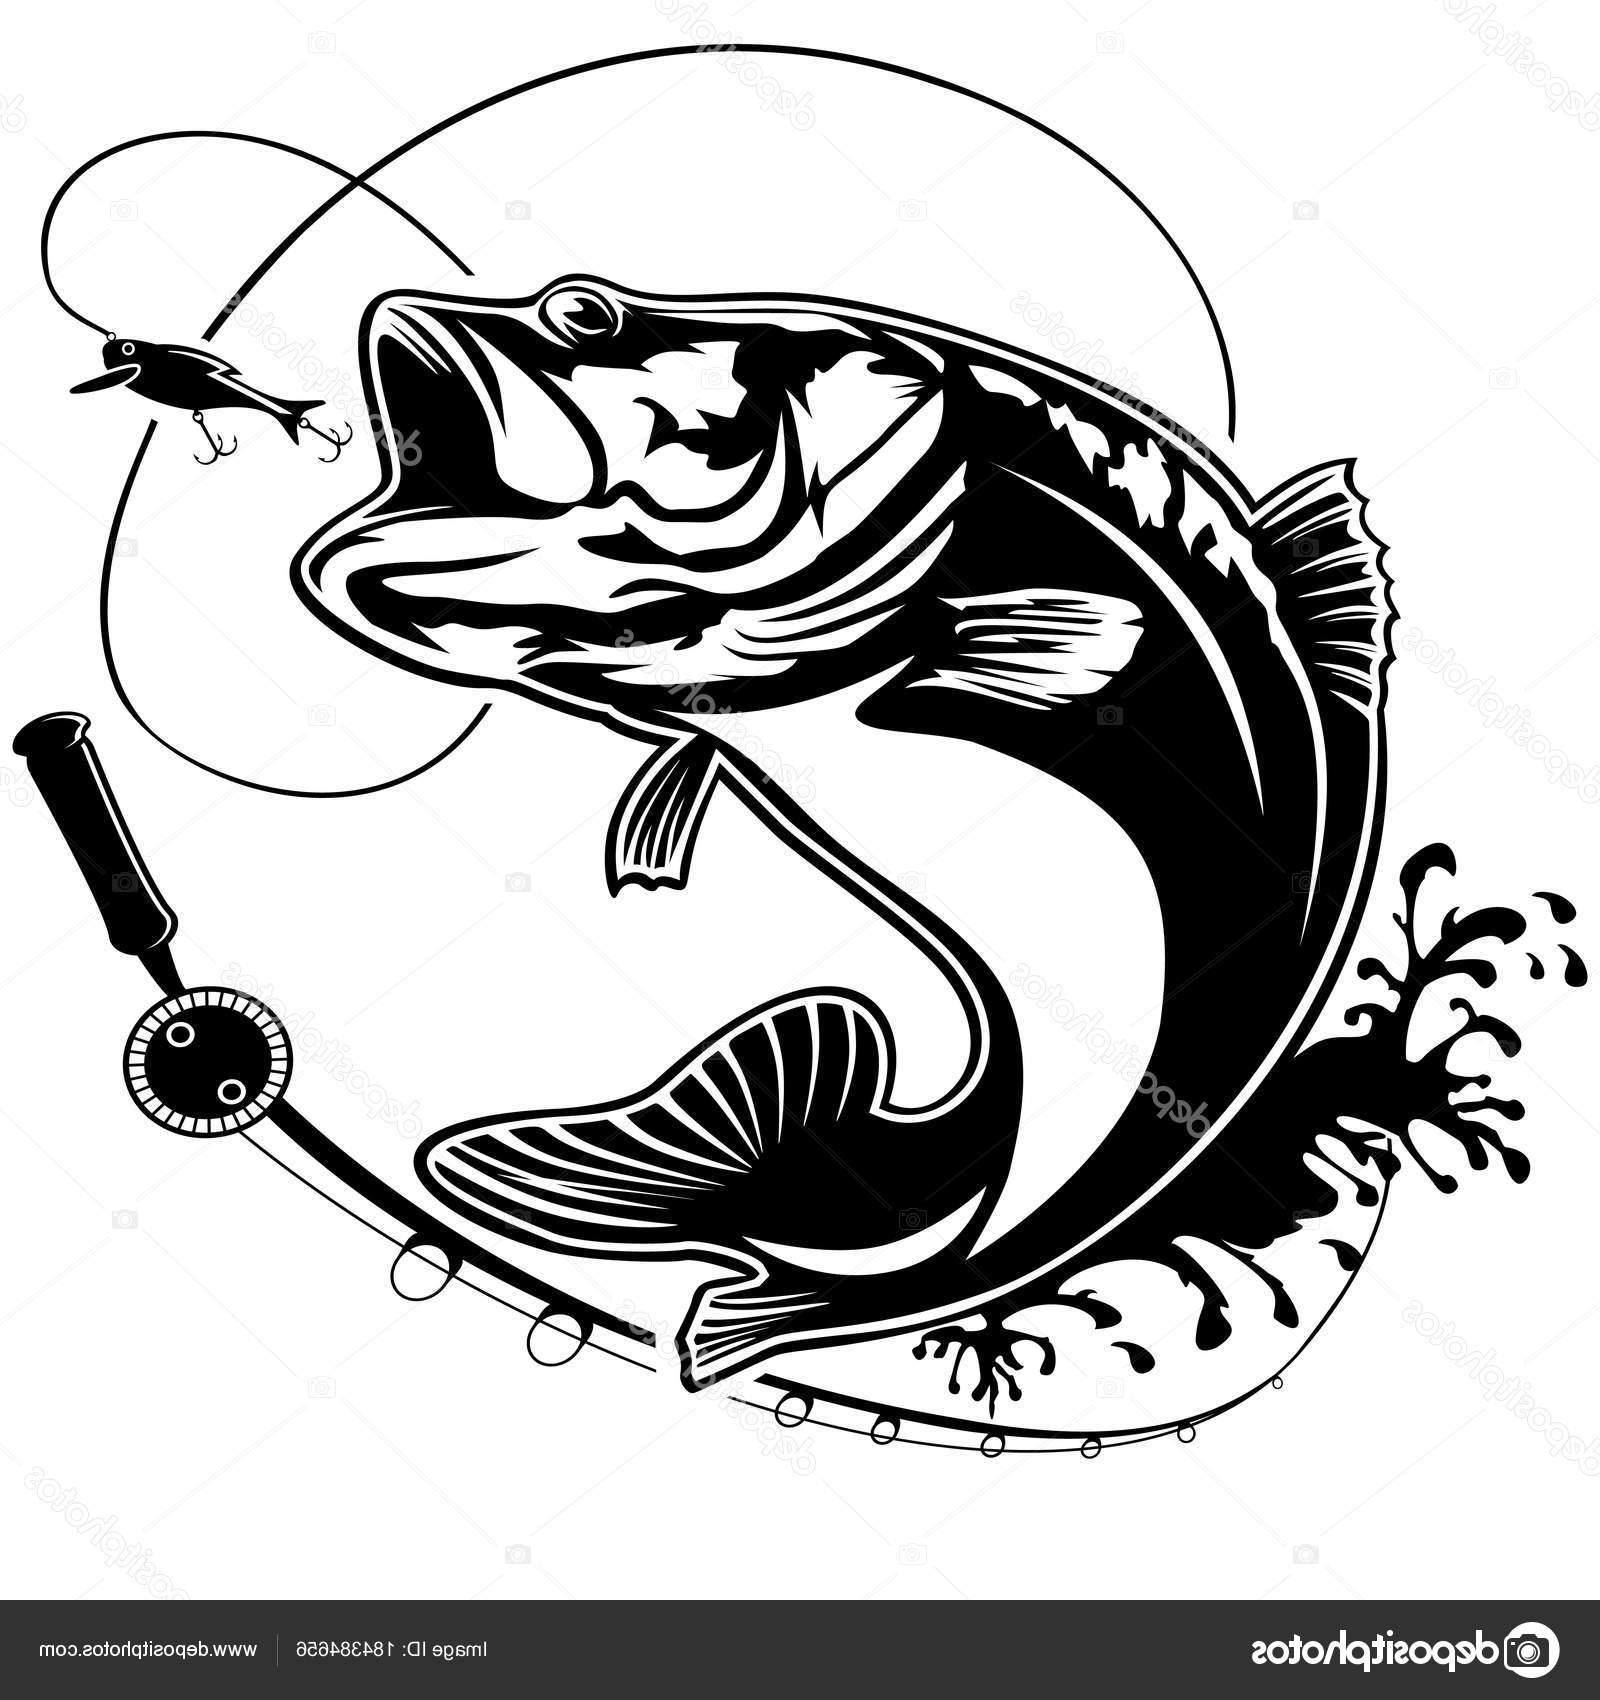 Download 18 Bass Svg Free Png